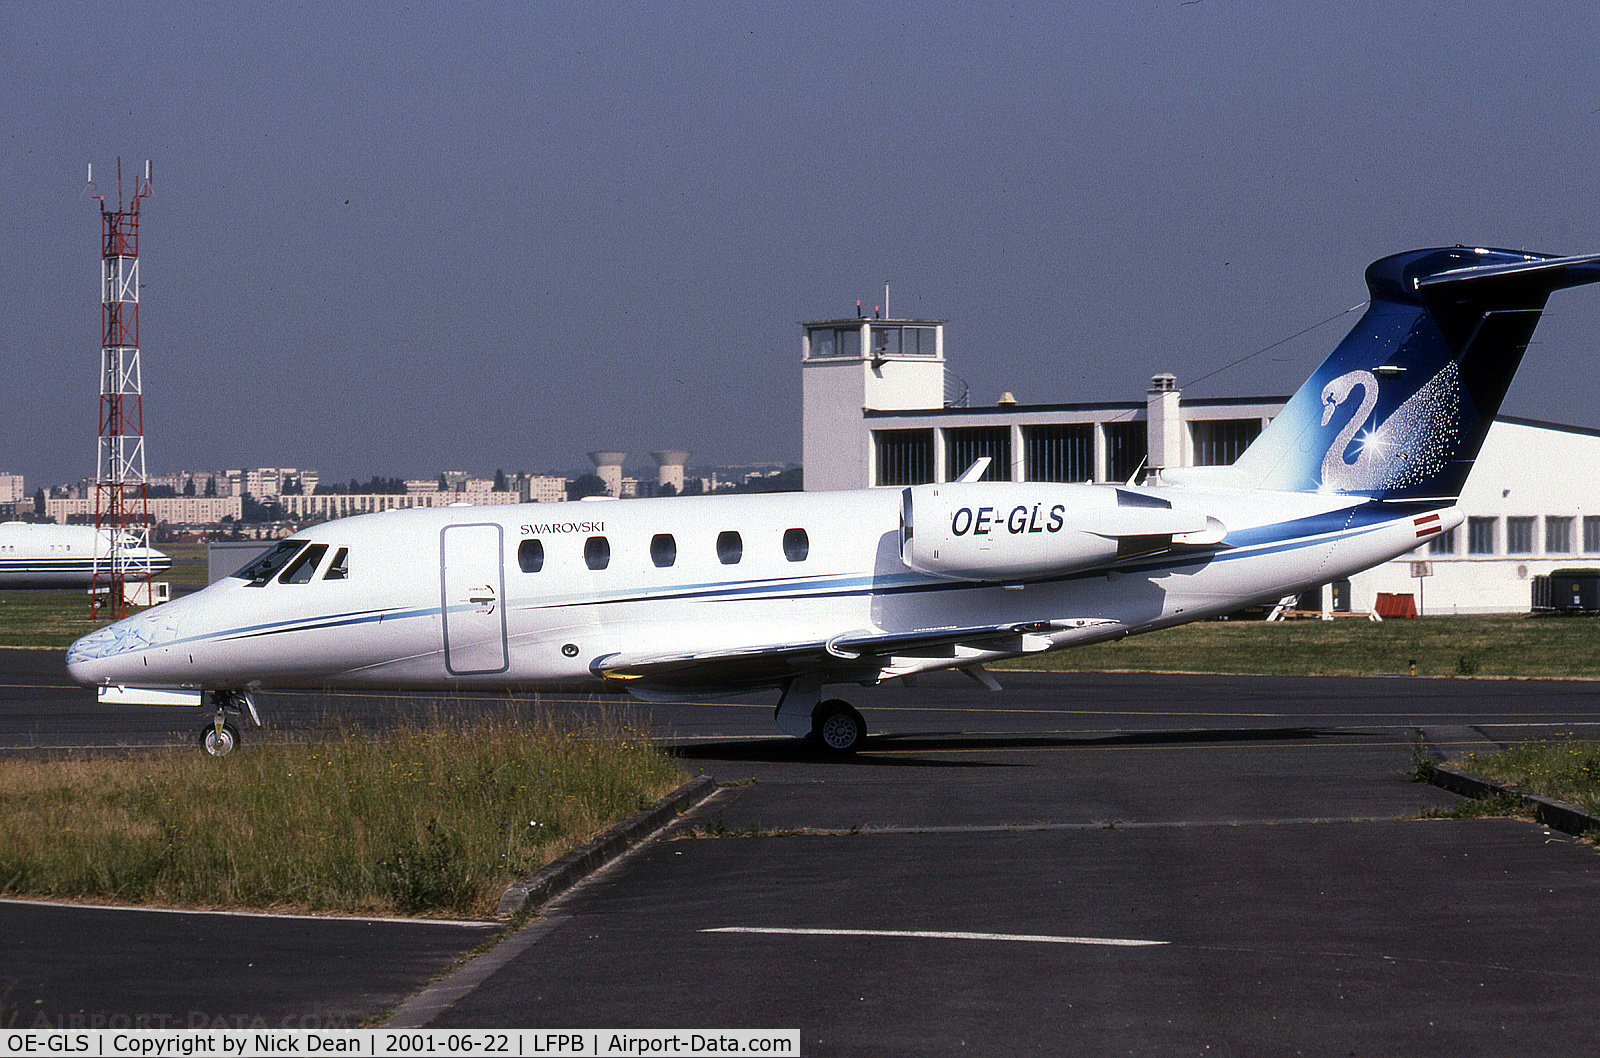 OE-GLS, Cessna 650 Citation VII C/N 650-7110, LFPB